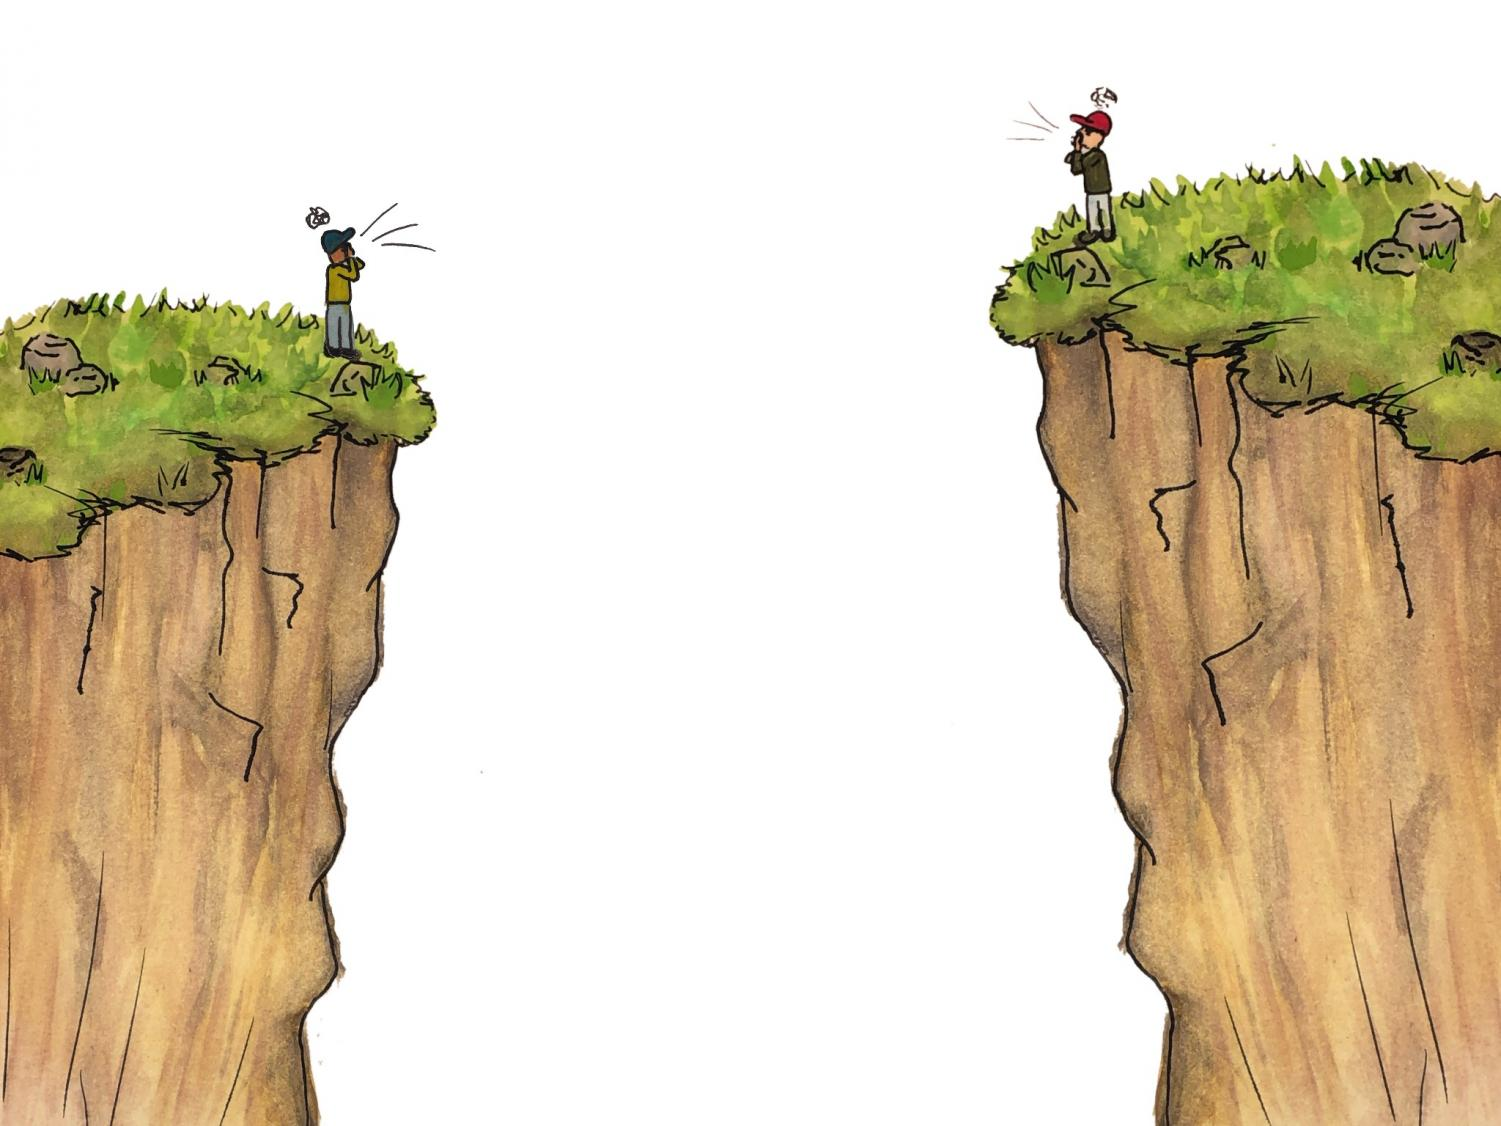 The gap between us.  We seemingly shout from opposite cliffs but fail to see any ways to bridge our differences and gaps